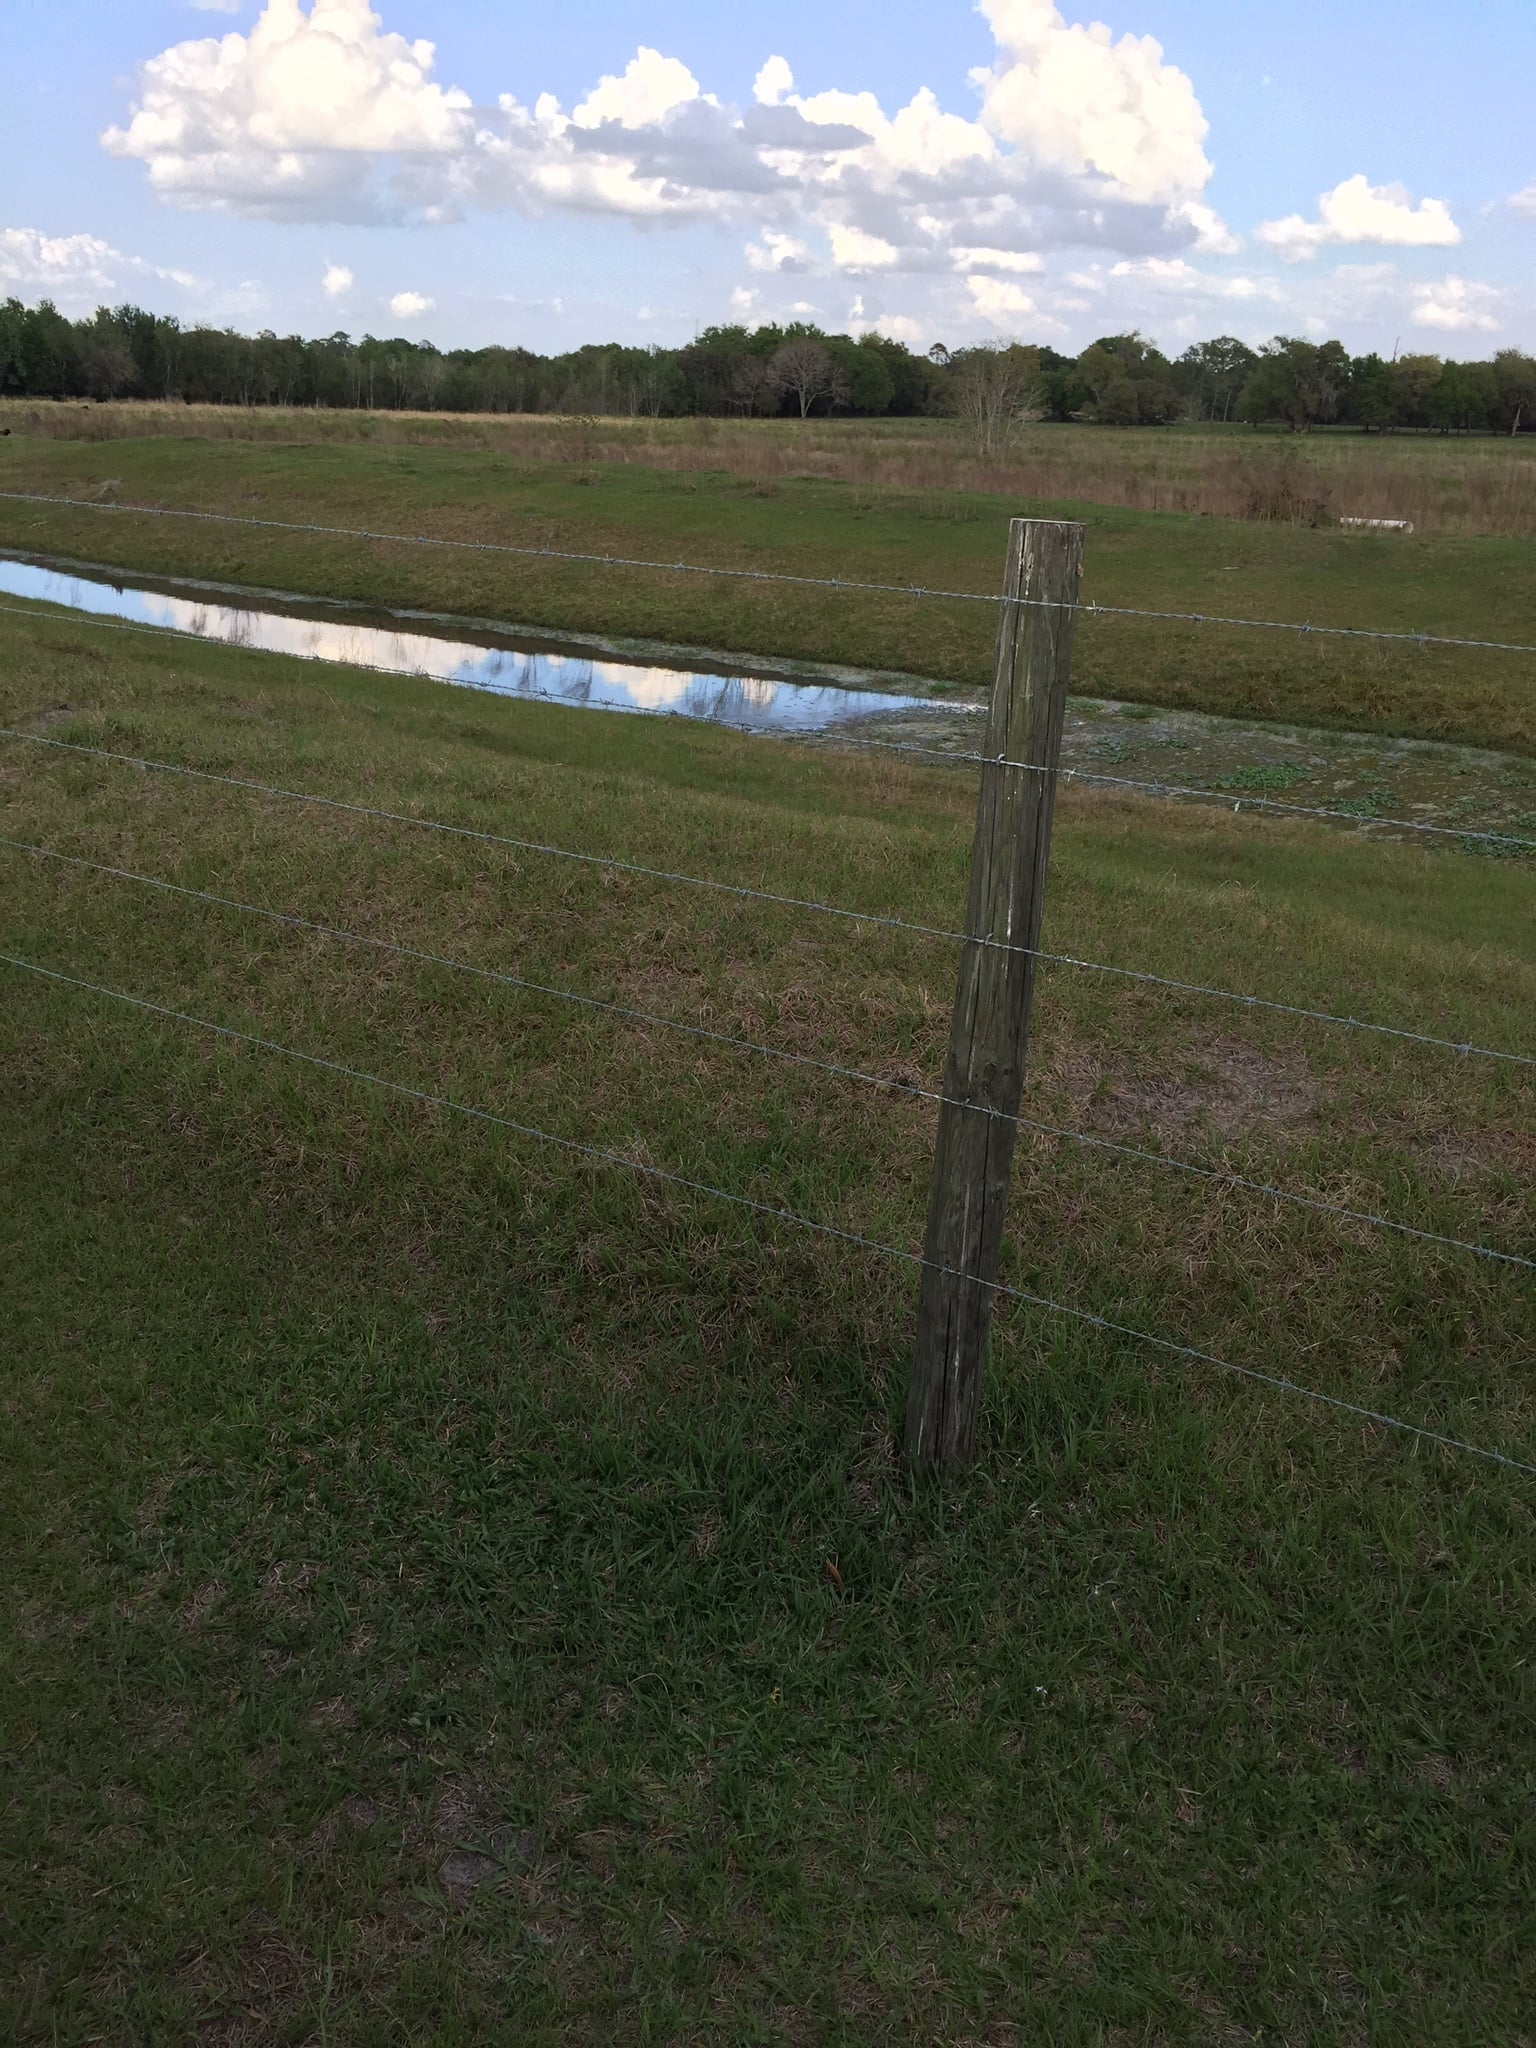 Photo of a ditch with water and clouds